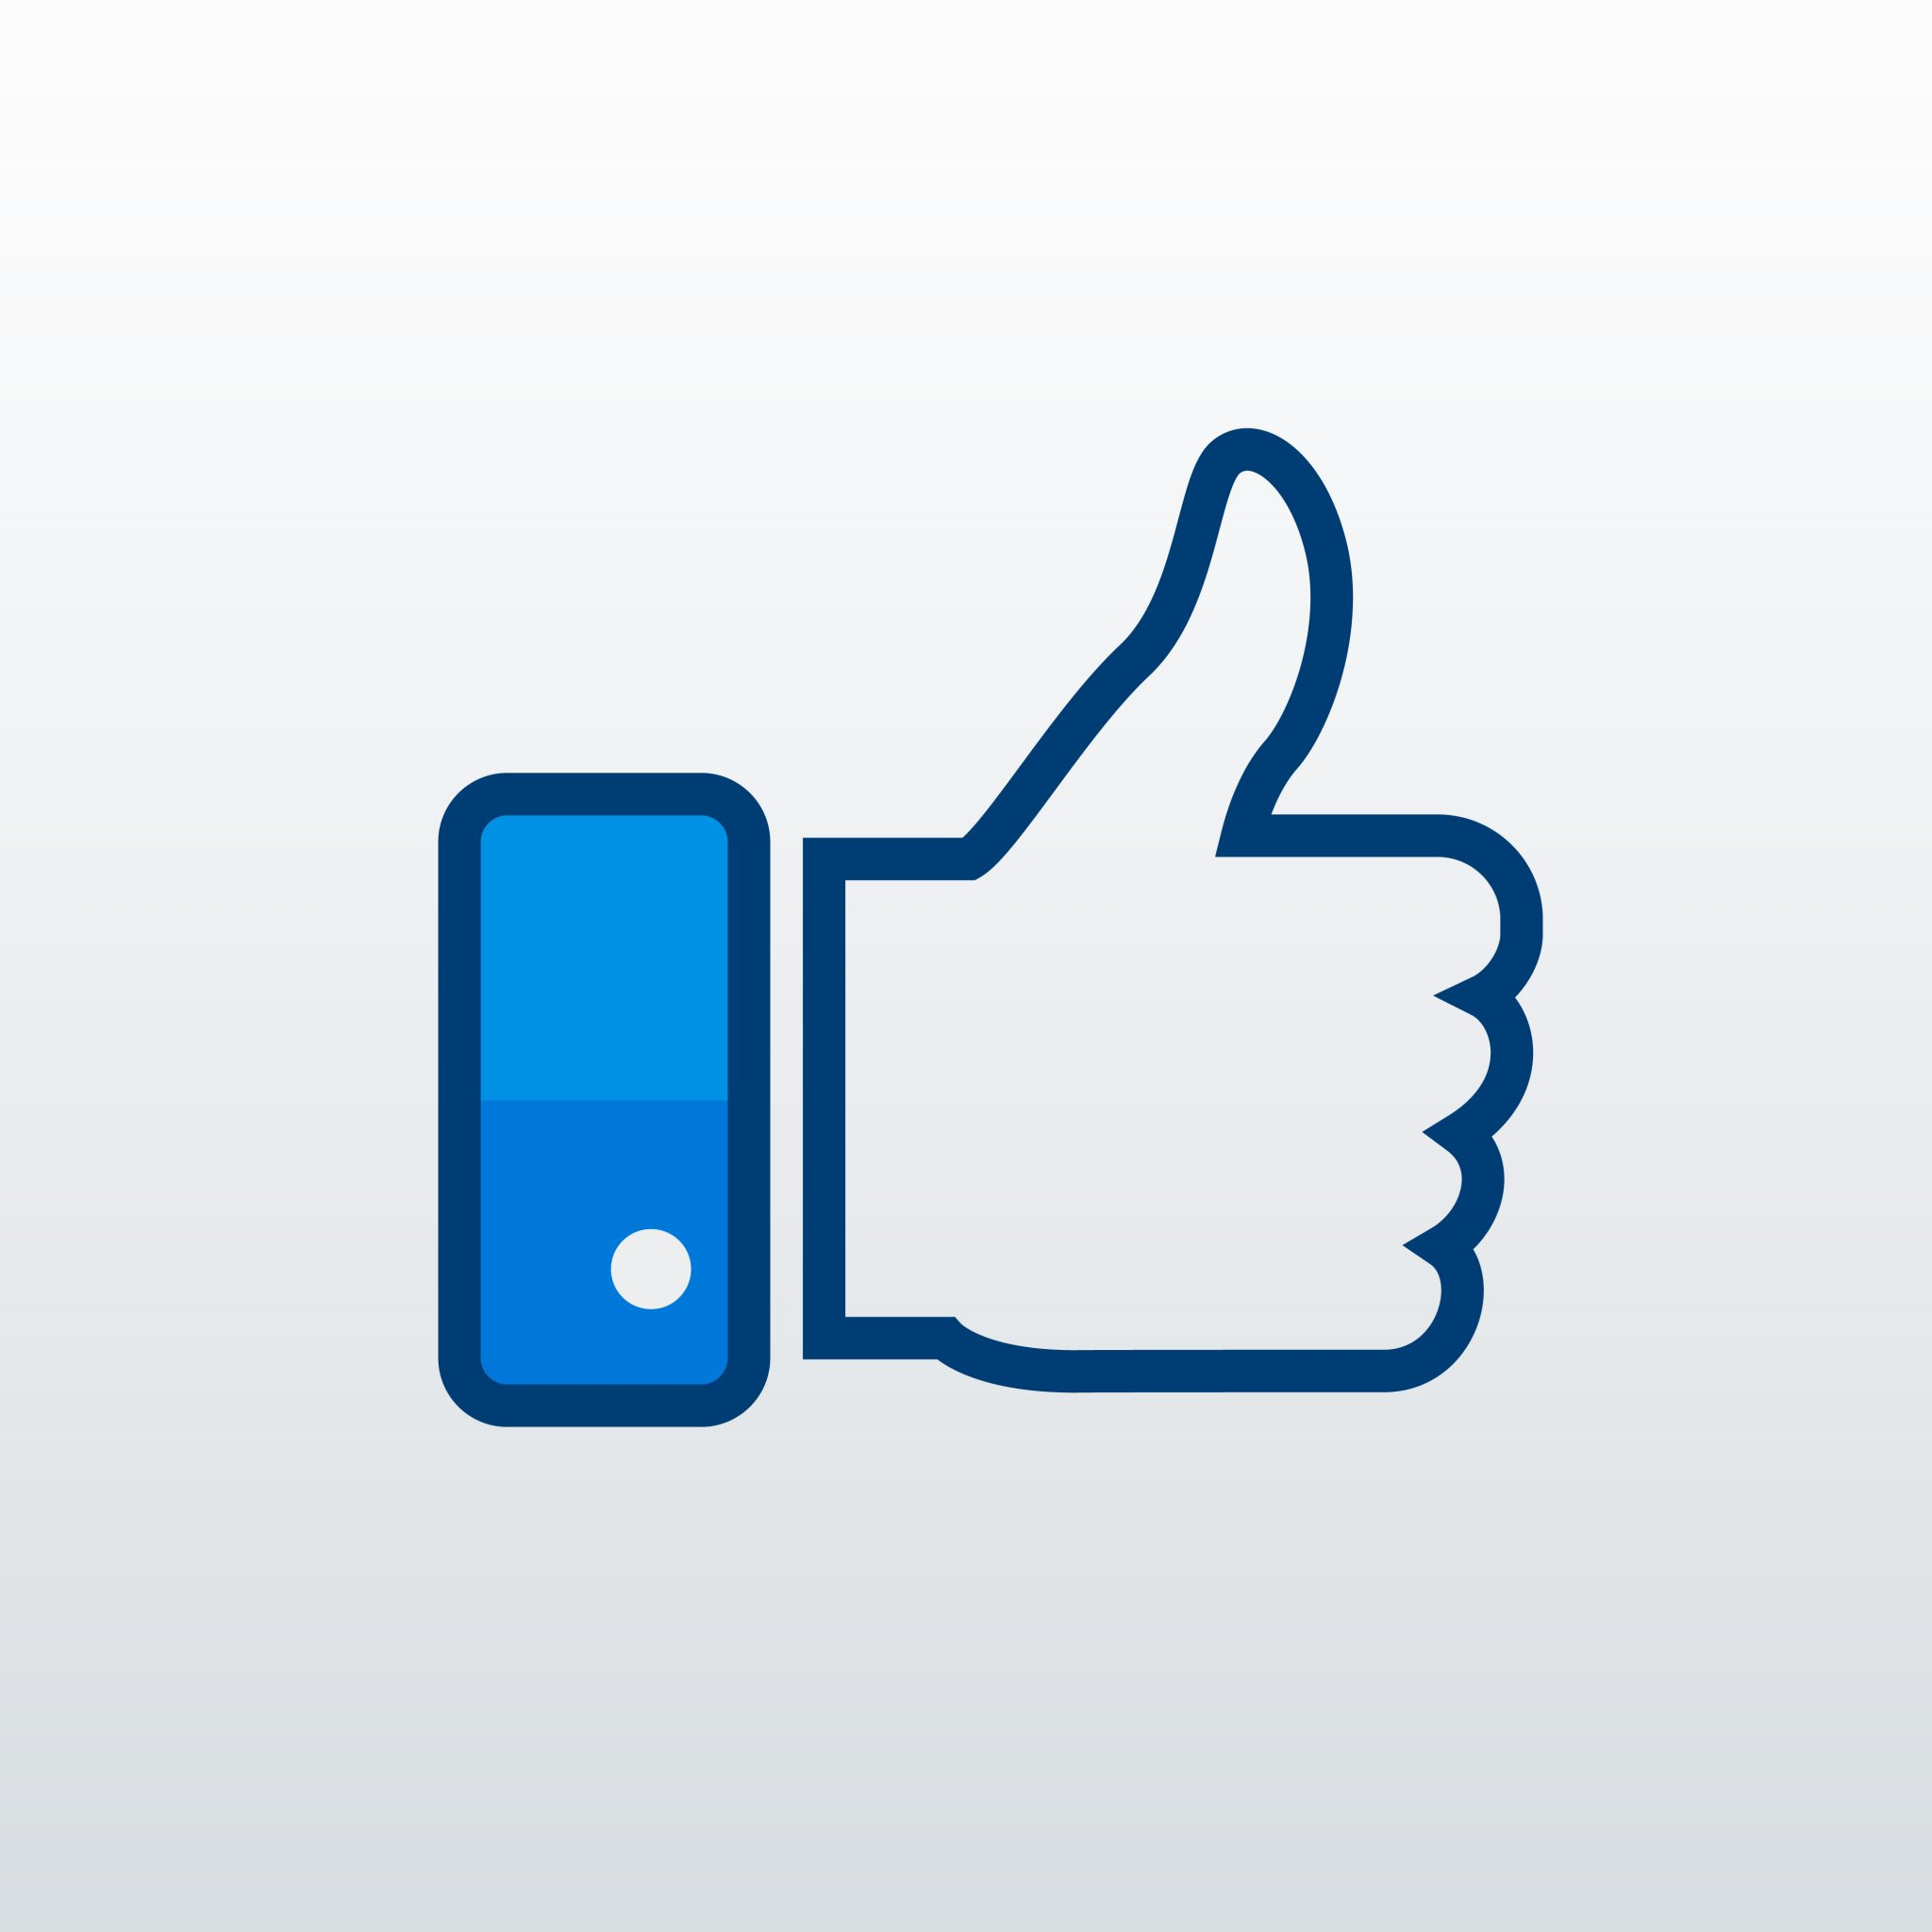 Facebook 'like' thumbs up image